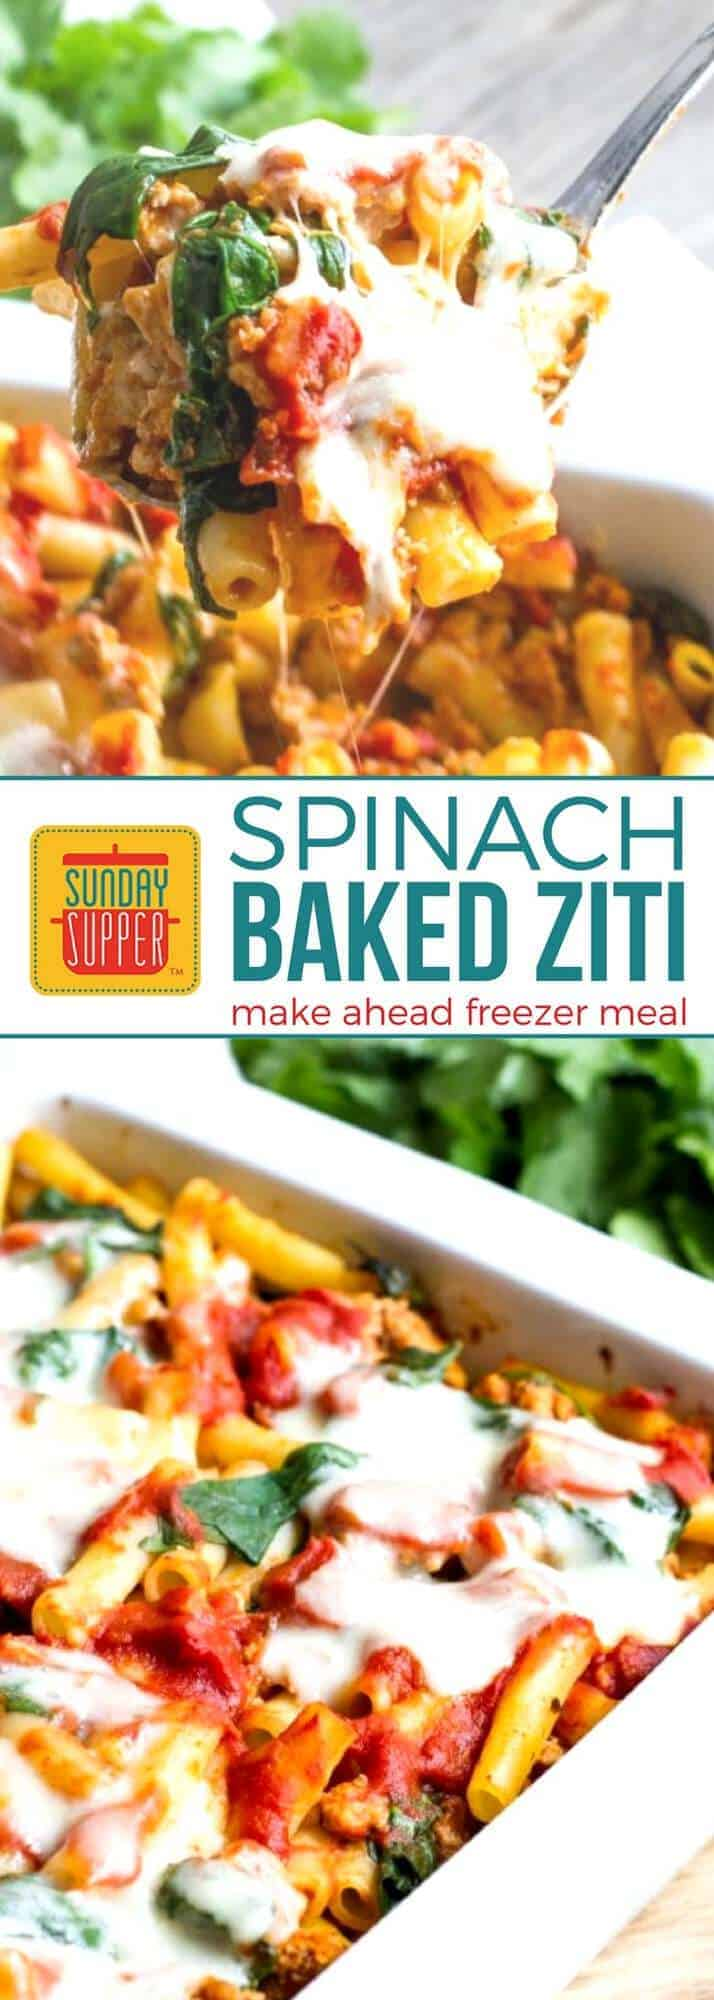 Start the new year healthier and organized with our Spinach Baked Ziti freezer meal recipe! This Sunday Supper recipe is a healthy make ahead freezer meal lightened up for the new year for the new you, but it's still total comfort food! It's a freezer meal to help make meal planning easier! Everyone in the family will love this easy recipe! #SundaySupper #HealthyRecipes #PastaRecipes #MakeAheadRecipes #FreezerMeal #MealPlanning